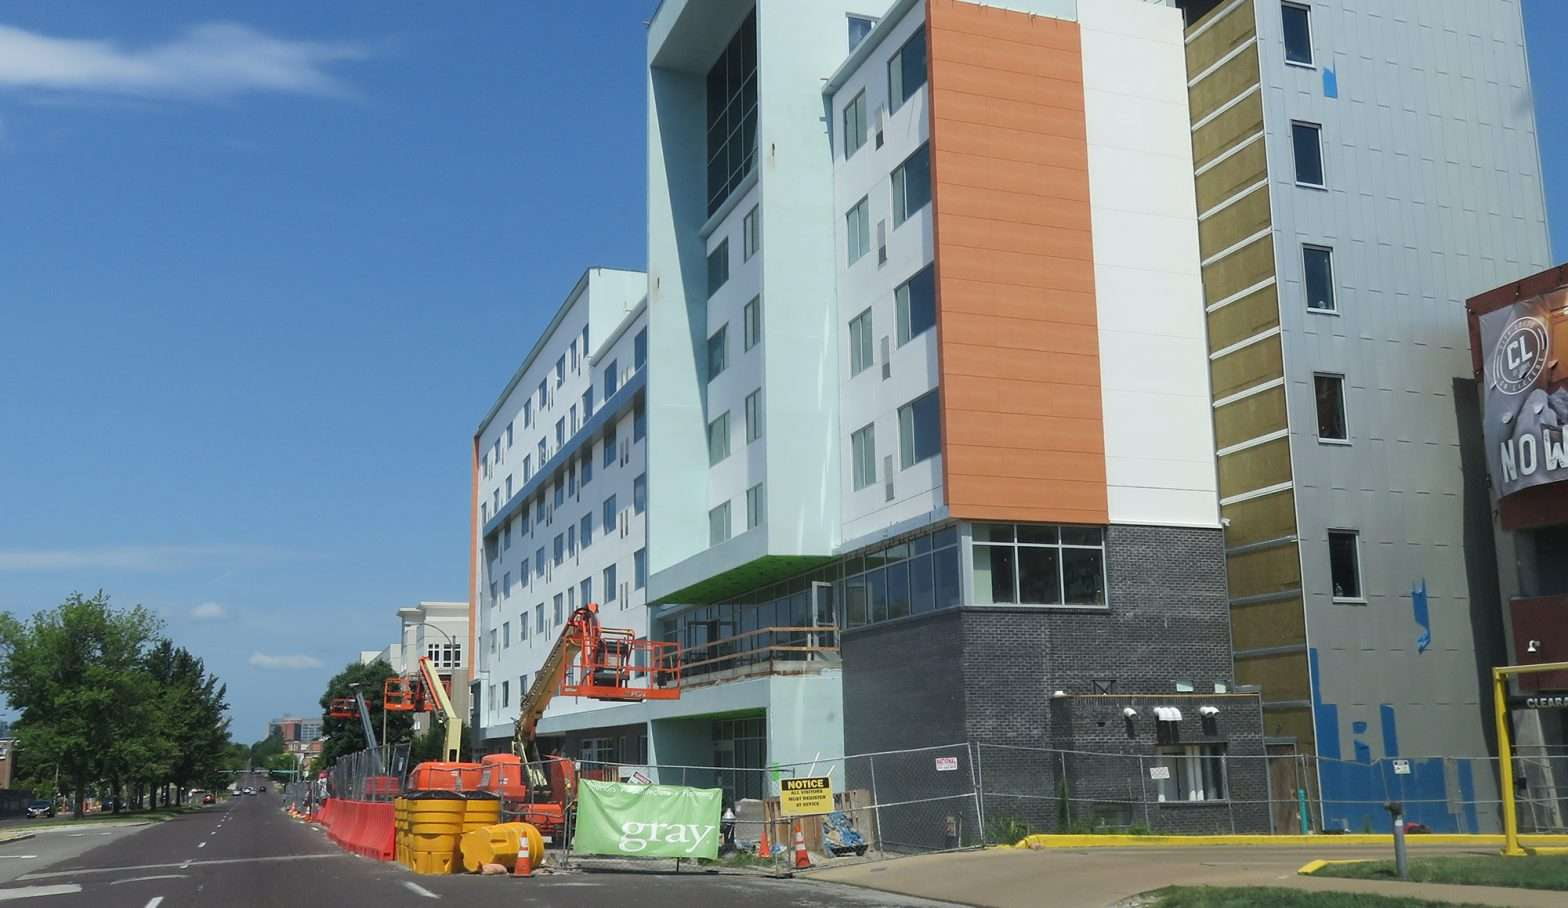 The Element Hotel Construction Update, Midtown, St. Louis. 7319.2020 credit craig currie